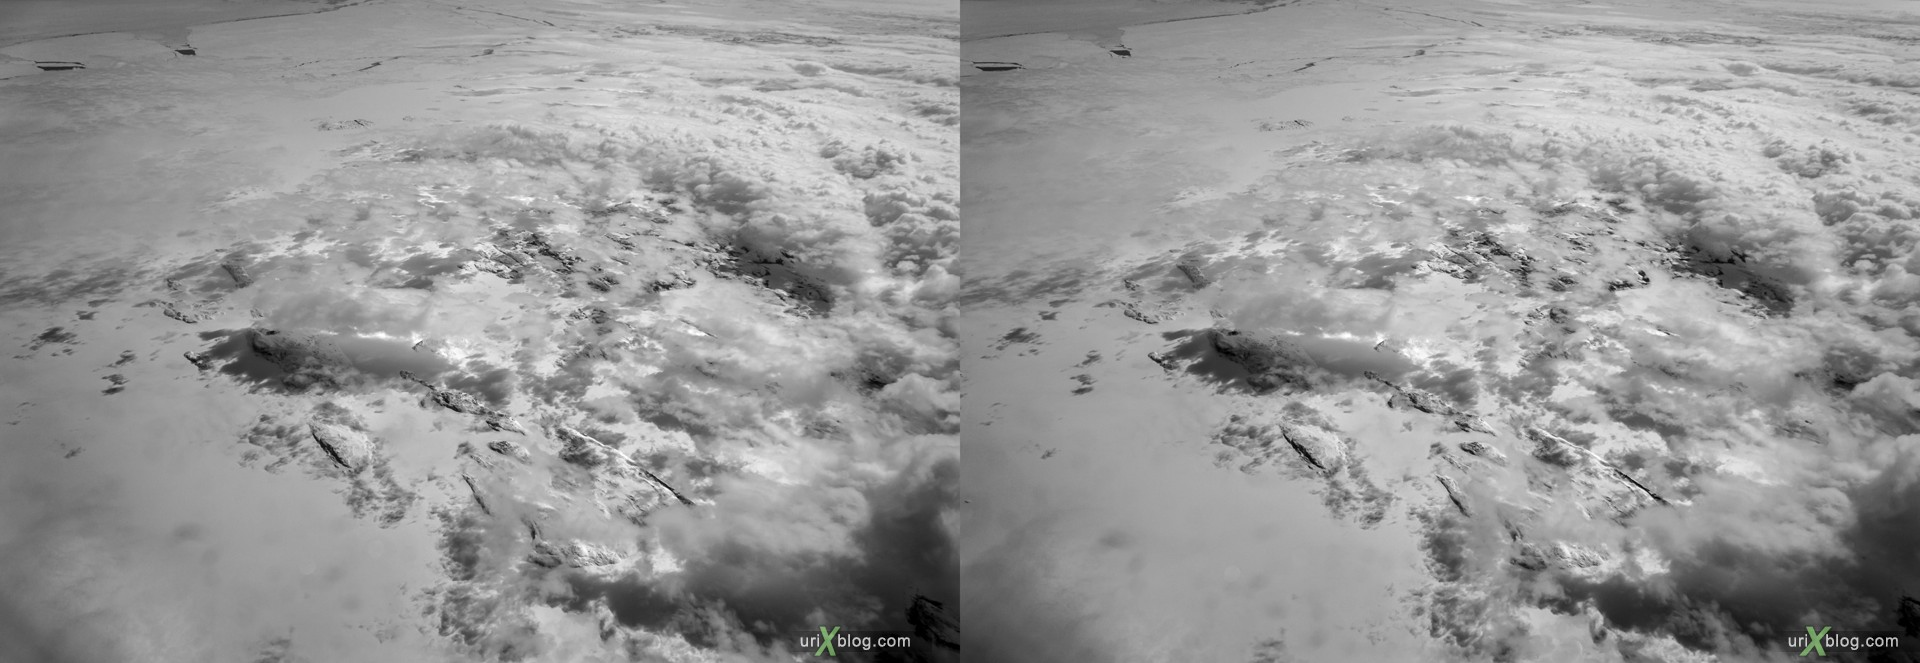 2013, Newfoundland and Labrador, panorama, airplane, black and white, bw, snow, ice, clouds, horizon, 3D, stereo pair, cross-eyed, crossview, cross view stereo pair, stereoscopic